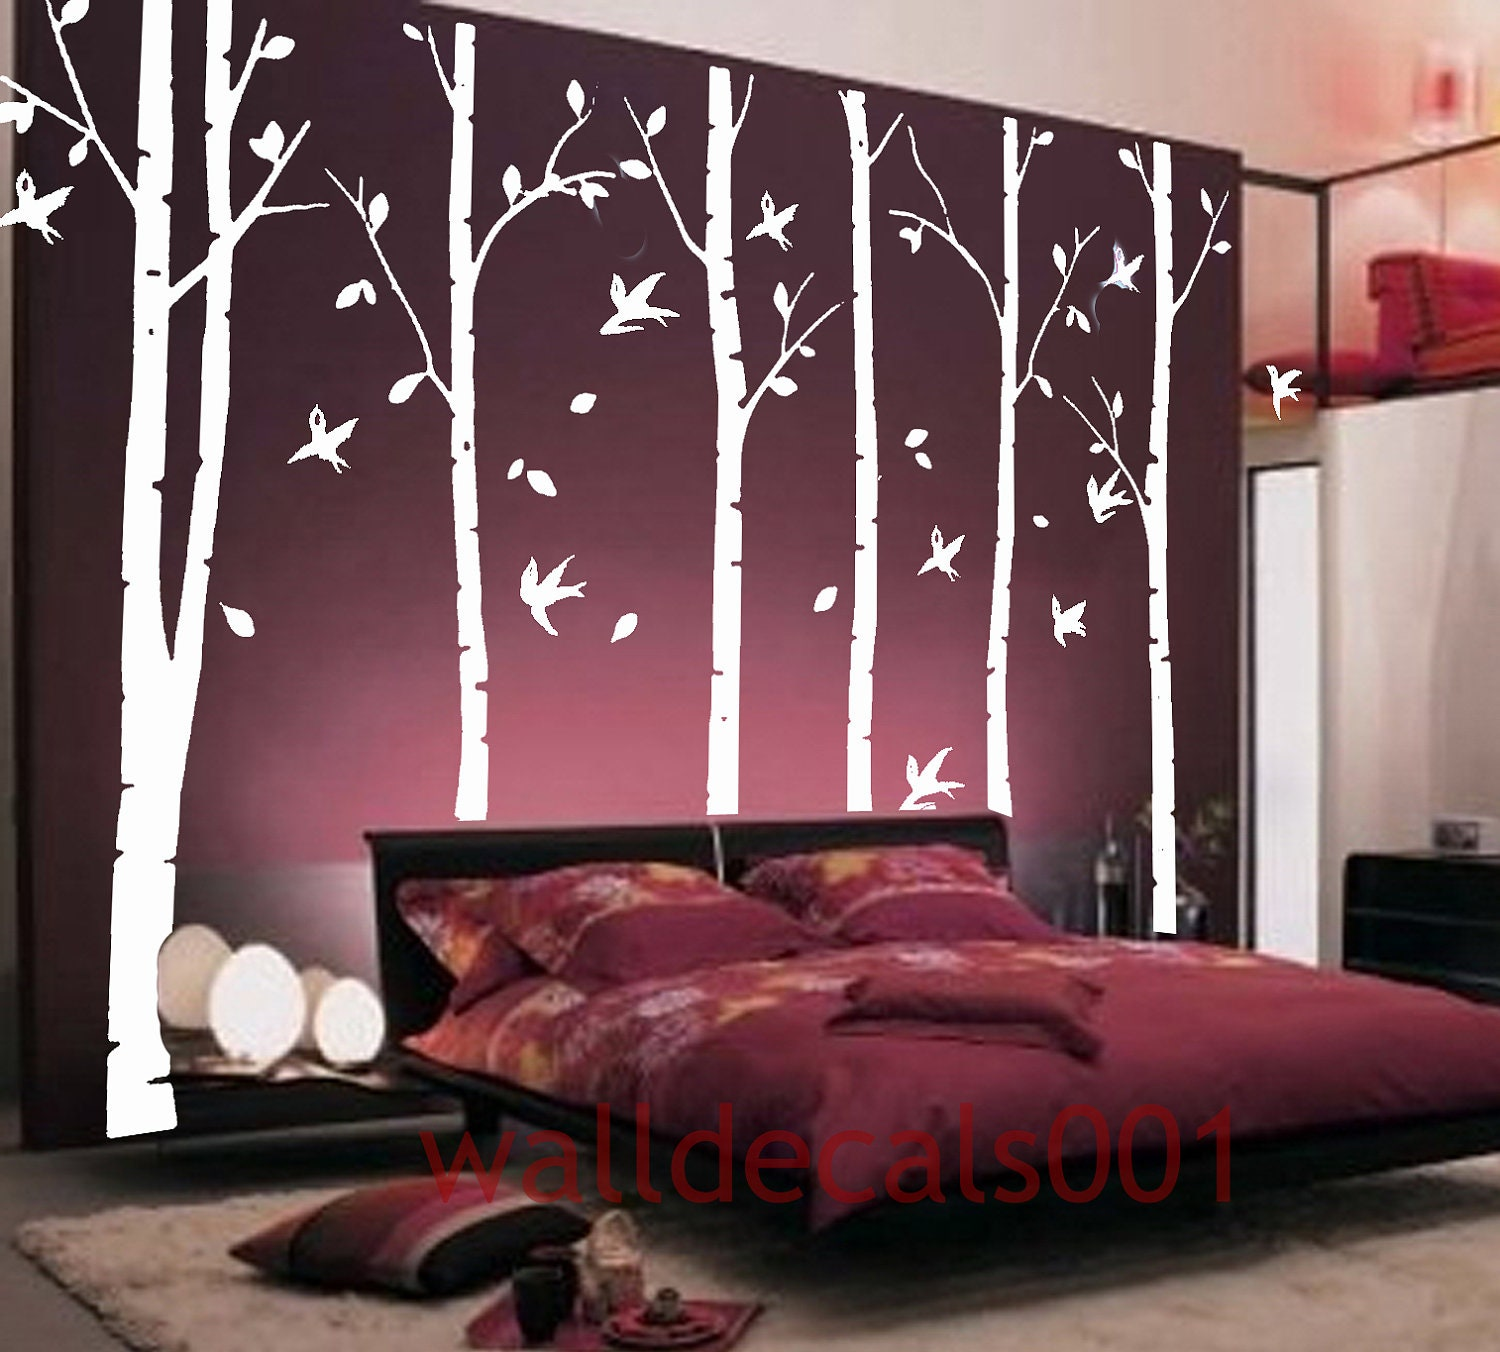 Whimsical Bedroom Decorating Ideas: Wall Decal Tree Decal Kids Decals Wall Stickers Kids Wall Art